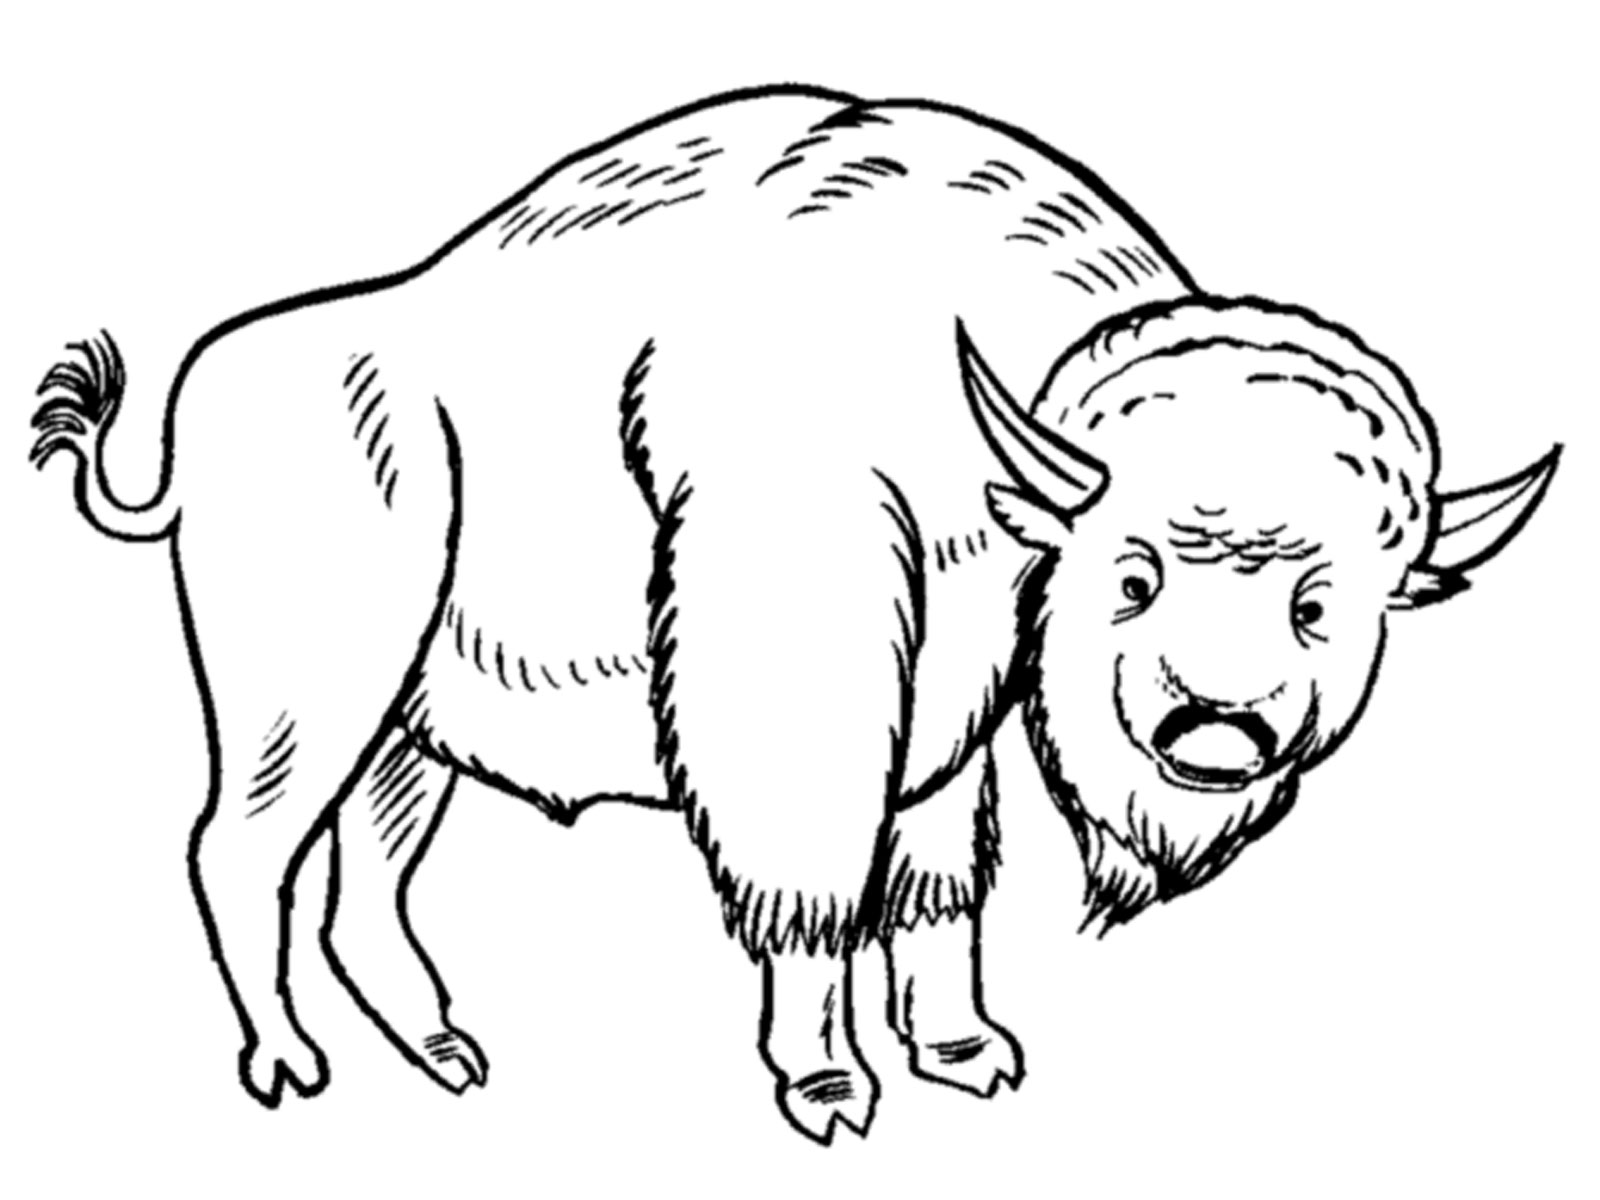 European Animals Coloring Pages : Bison coloring pages for kids realistic